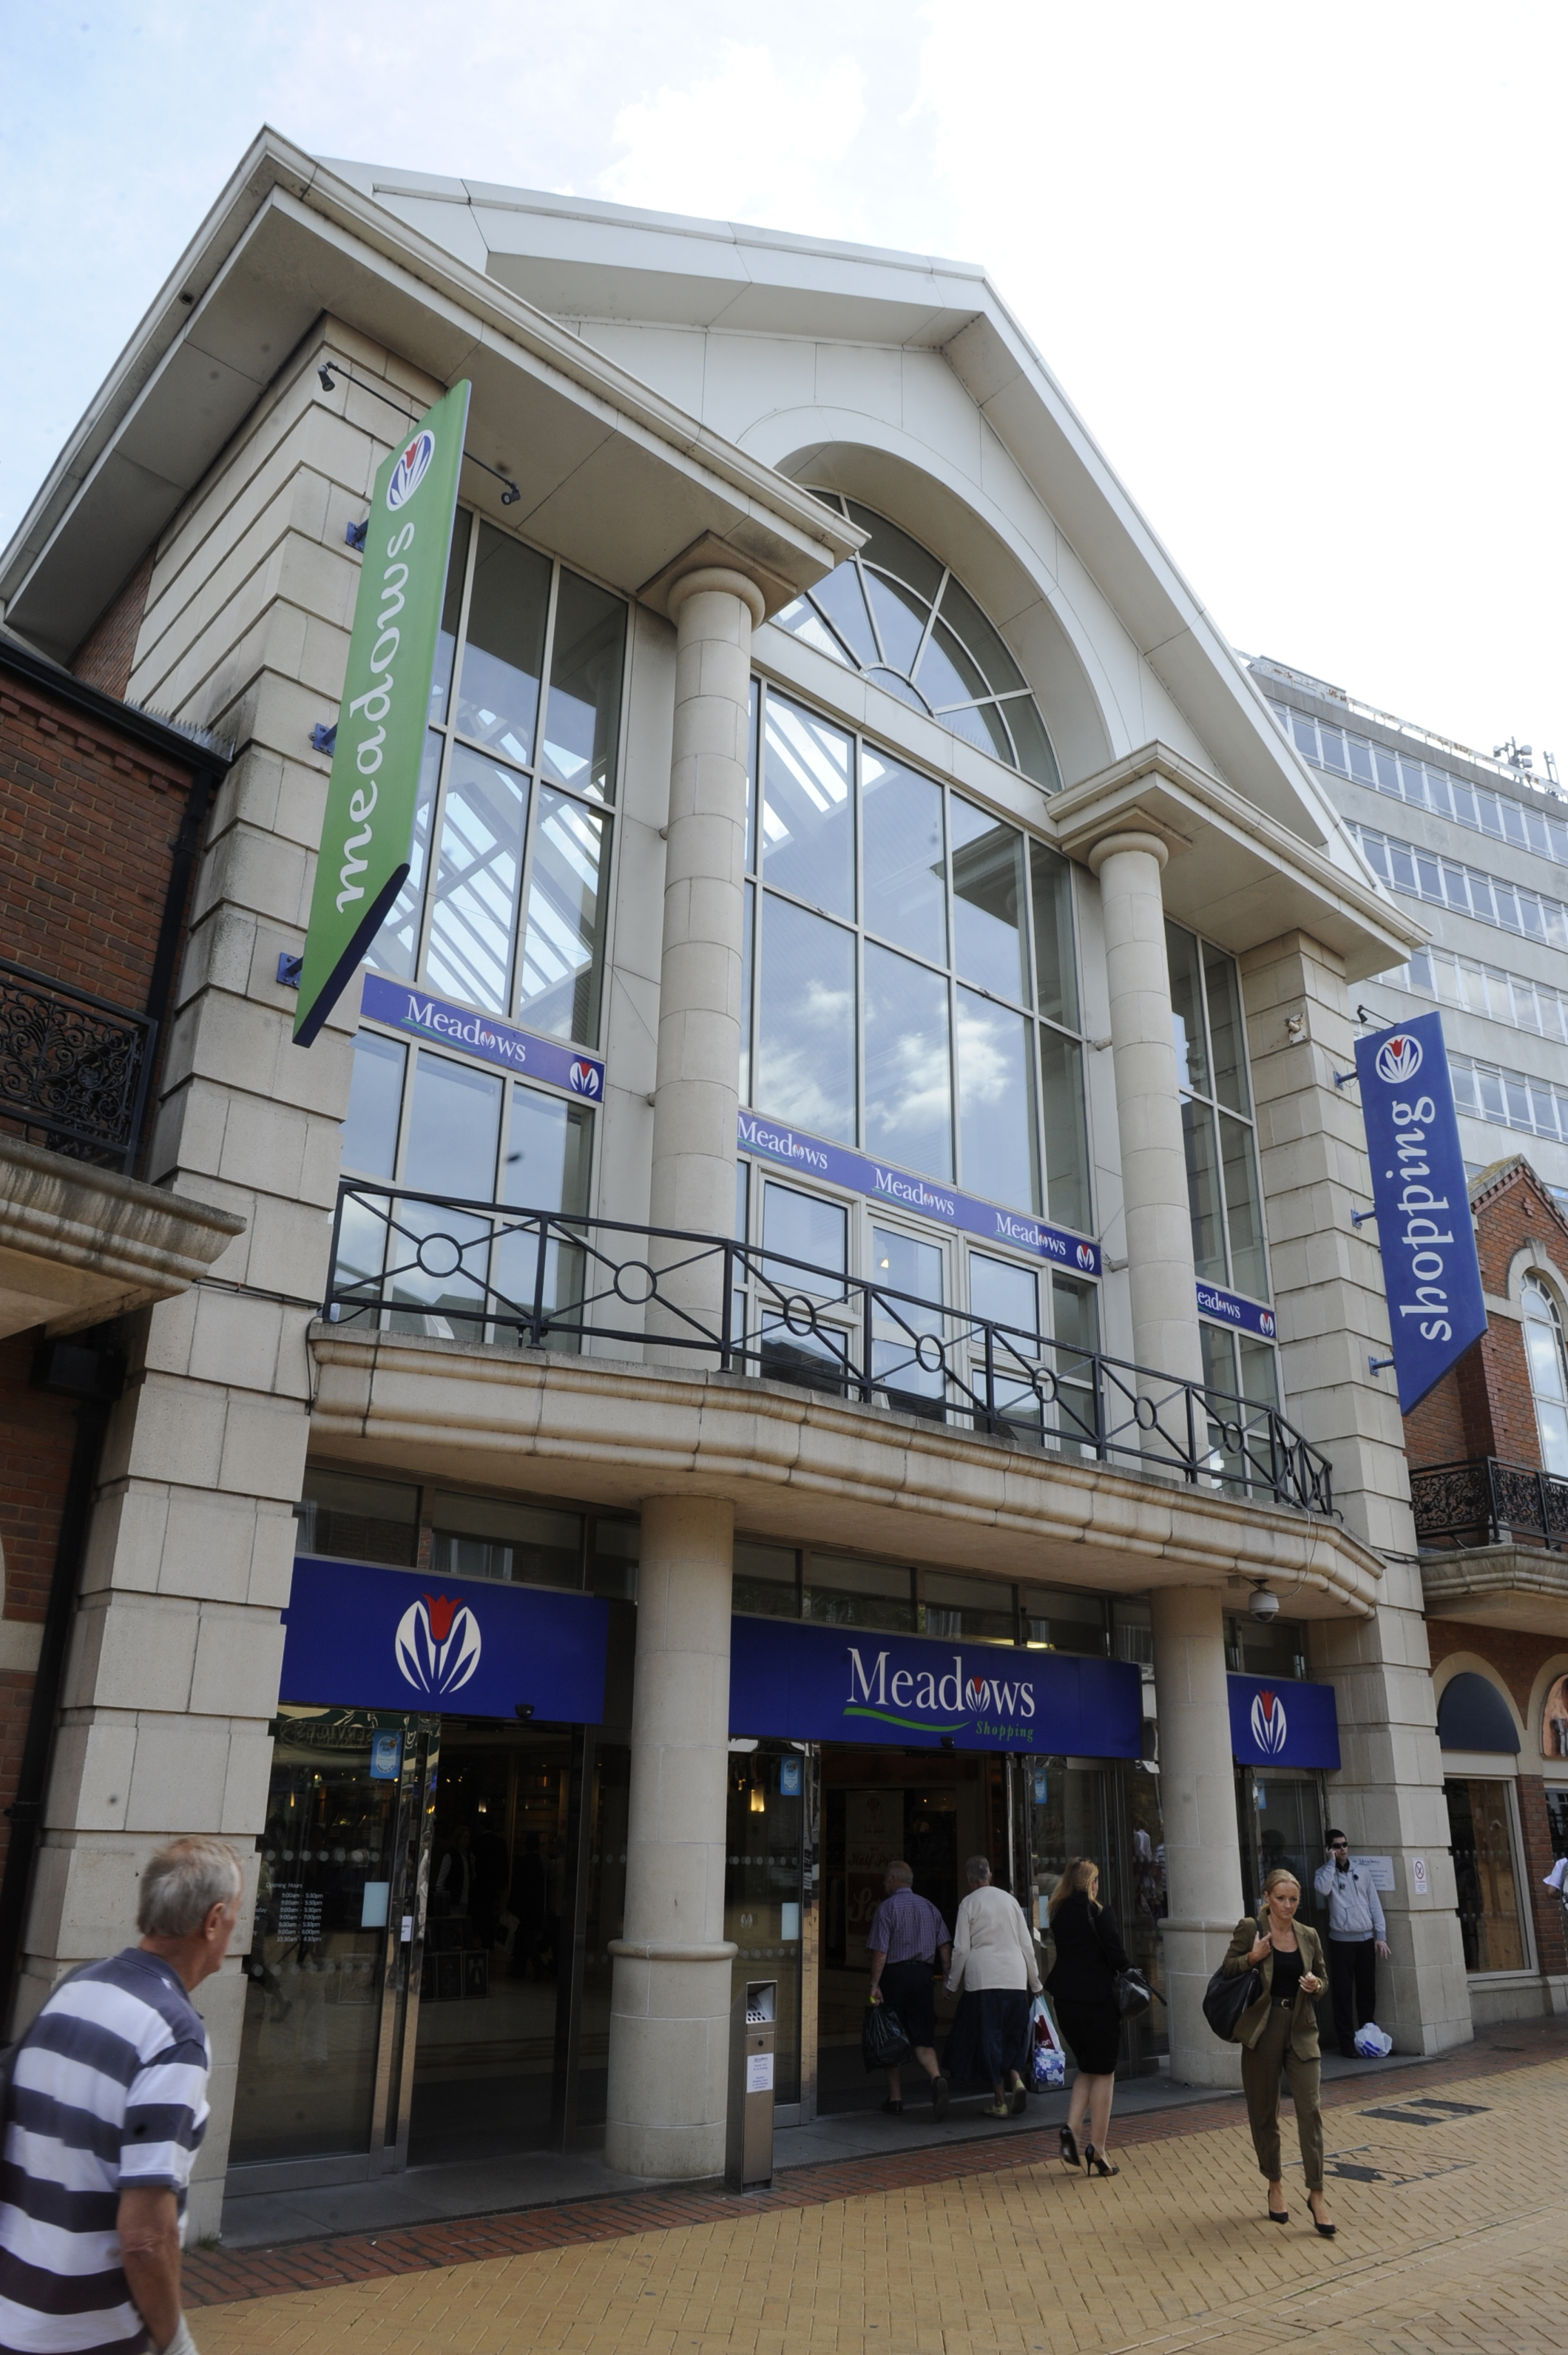 Meadows Shopping Centre wins green award